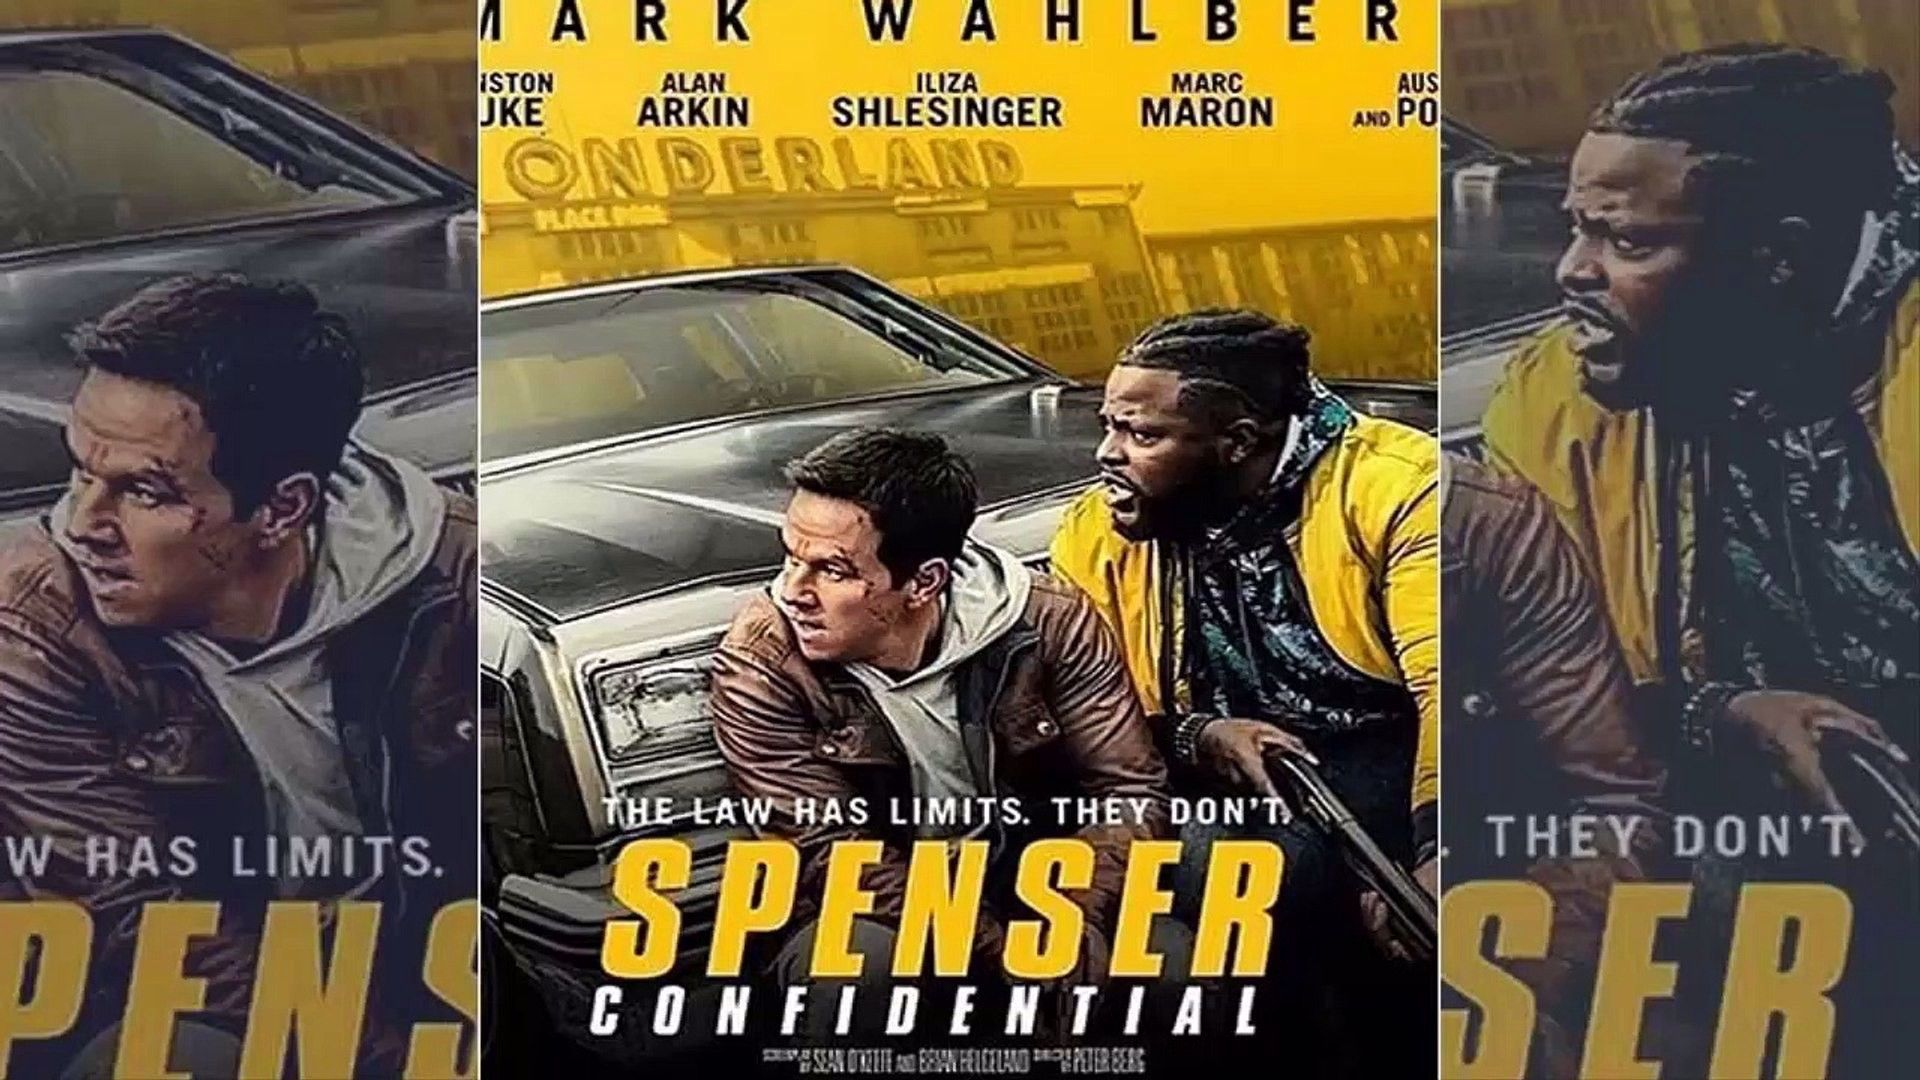 Watch Now Hollywood One Of The Best Crime English Movies Spenser Confidential 2020 Full Hd 4k Ultra Al In 2020 New Movies Netflix Original Movies Thriller Movie